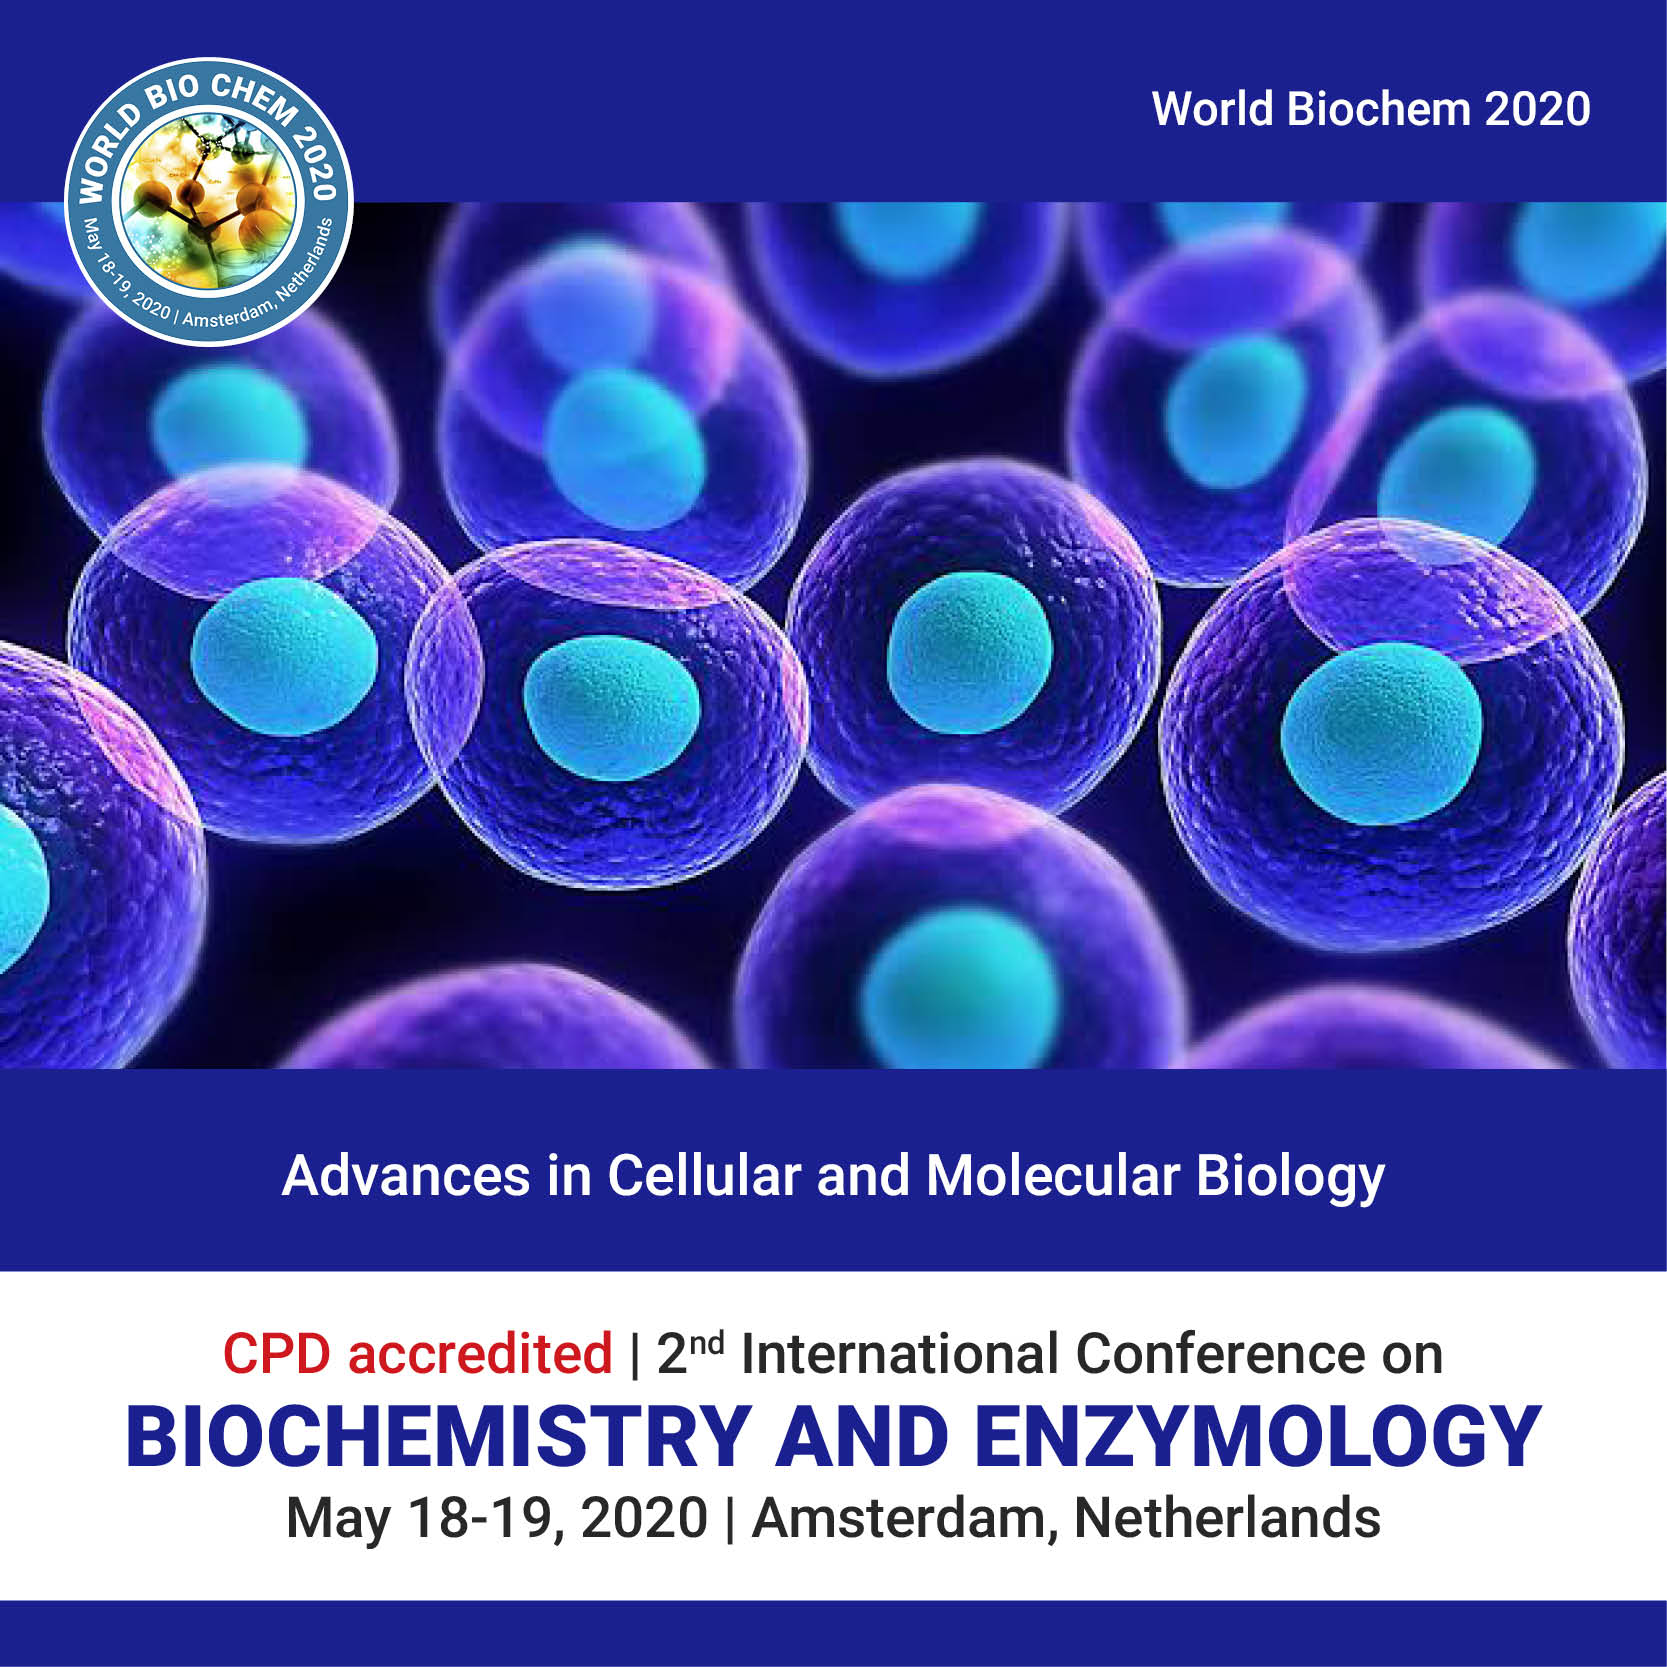 ADVANCES IN CELLULAR AND MOLECULAR BIOLOGY Photo